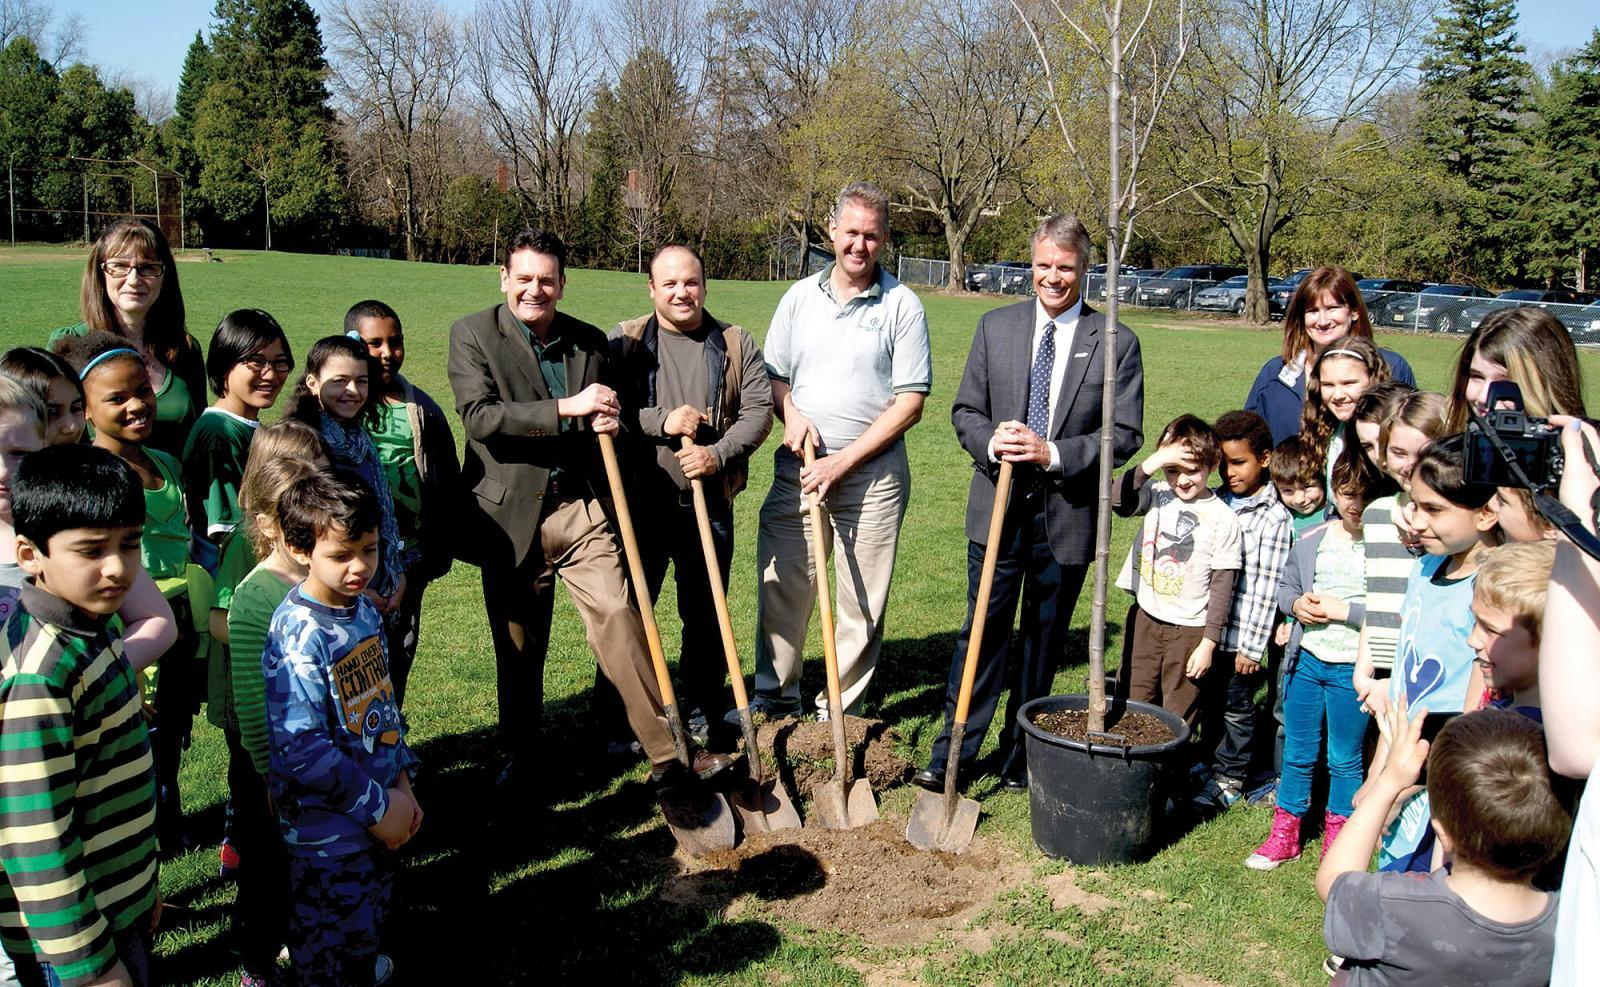 The Golden Horseshoe Chapter's move to build community relationships was popular with the students at King's Road Elementary School in Burlington. The Chapter organized a tree planting day as part of Arbor Day. In photo Chapter board members Fiore Zenone and Tim Cruickshanks are joined by the students and staff of the school along with Burlington mayor Rick Goldring and councillor Rick Craven.